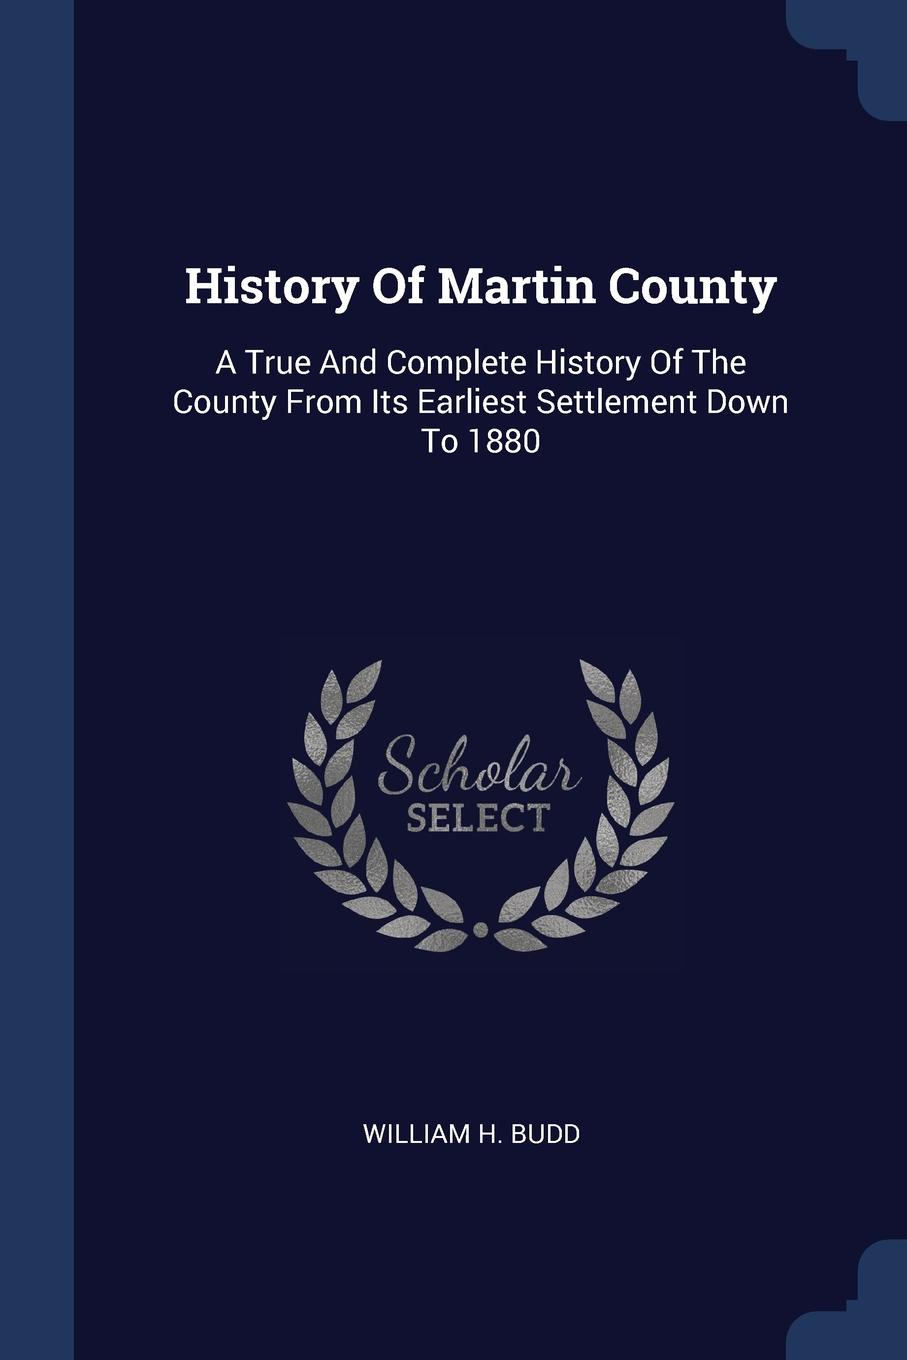 William H. Budd History Of Martin County. A True And Complete History Of The County From Its Earliest Settlement Down To 1880 charles richard tuttle the centennial northwest an illustrated history of the northwest being a full and complete civil political and military history of this great section of the united states from its earliest settlement to the present time